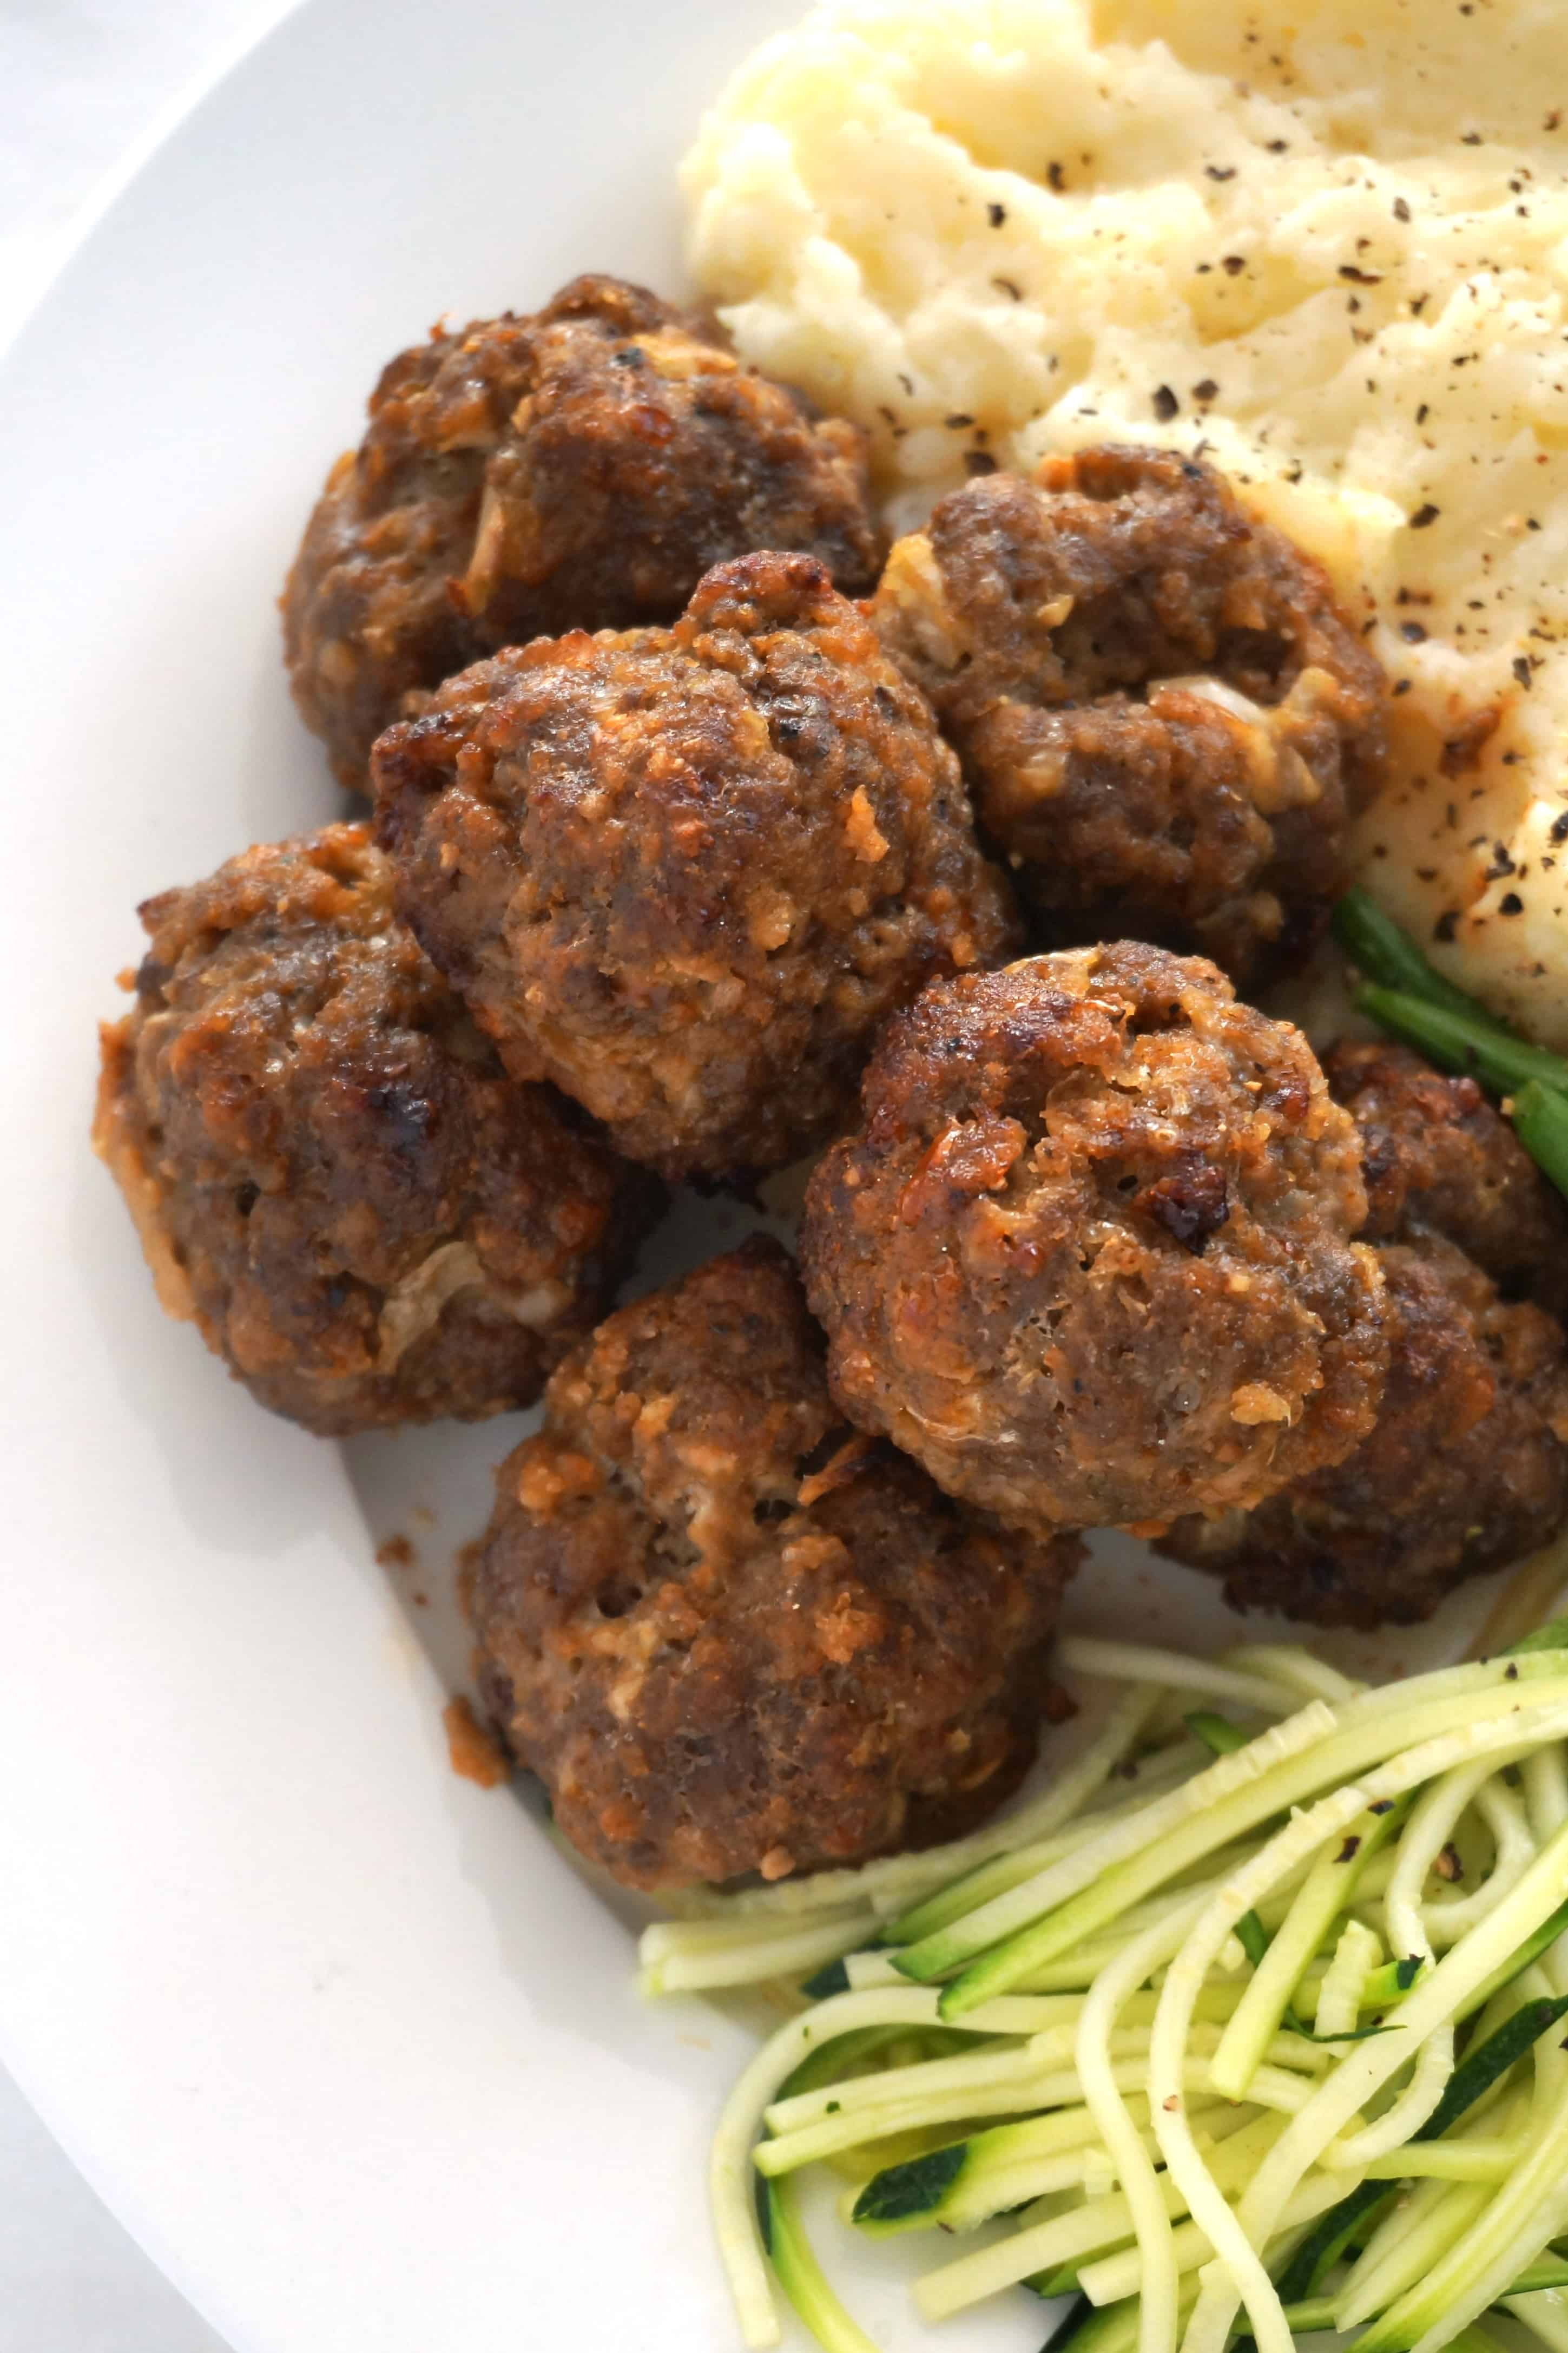 close up of baked meatballs on a plate with vegetables and mash